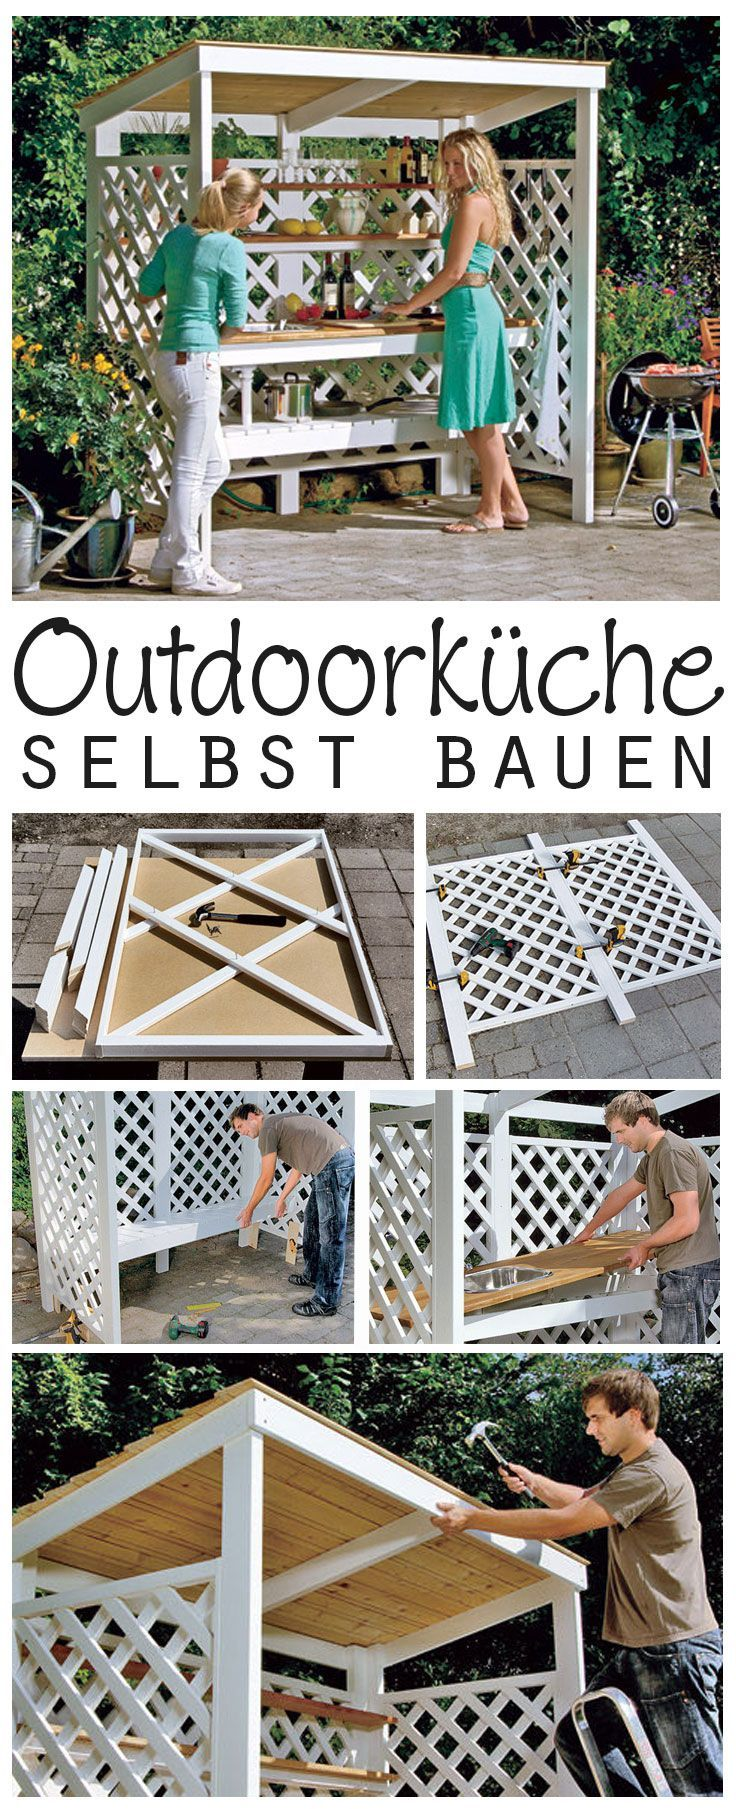 48 best garten möbel | garden furniture images on Pinterest ...